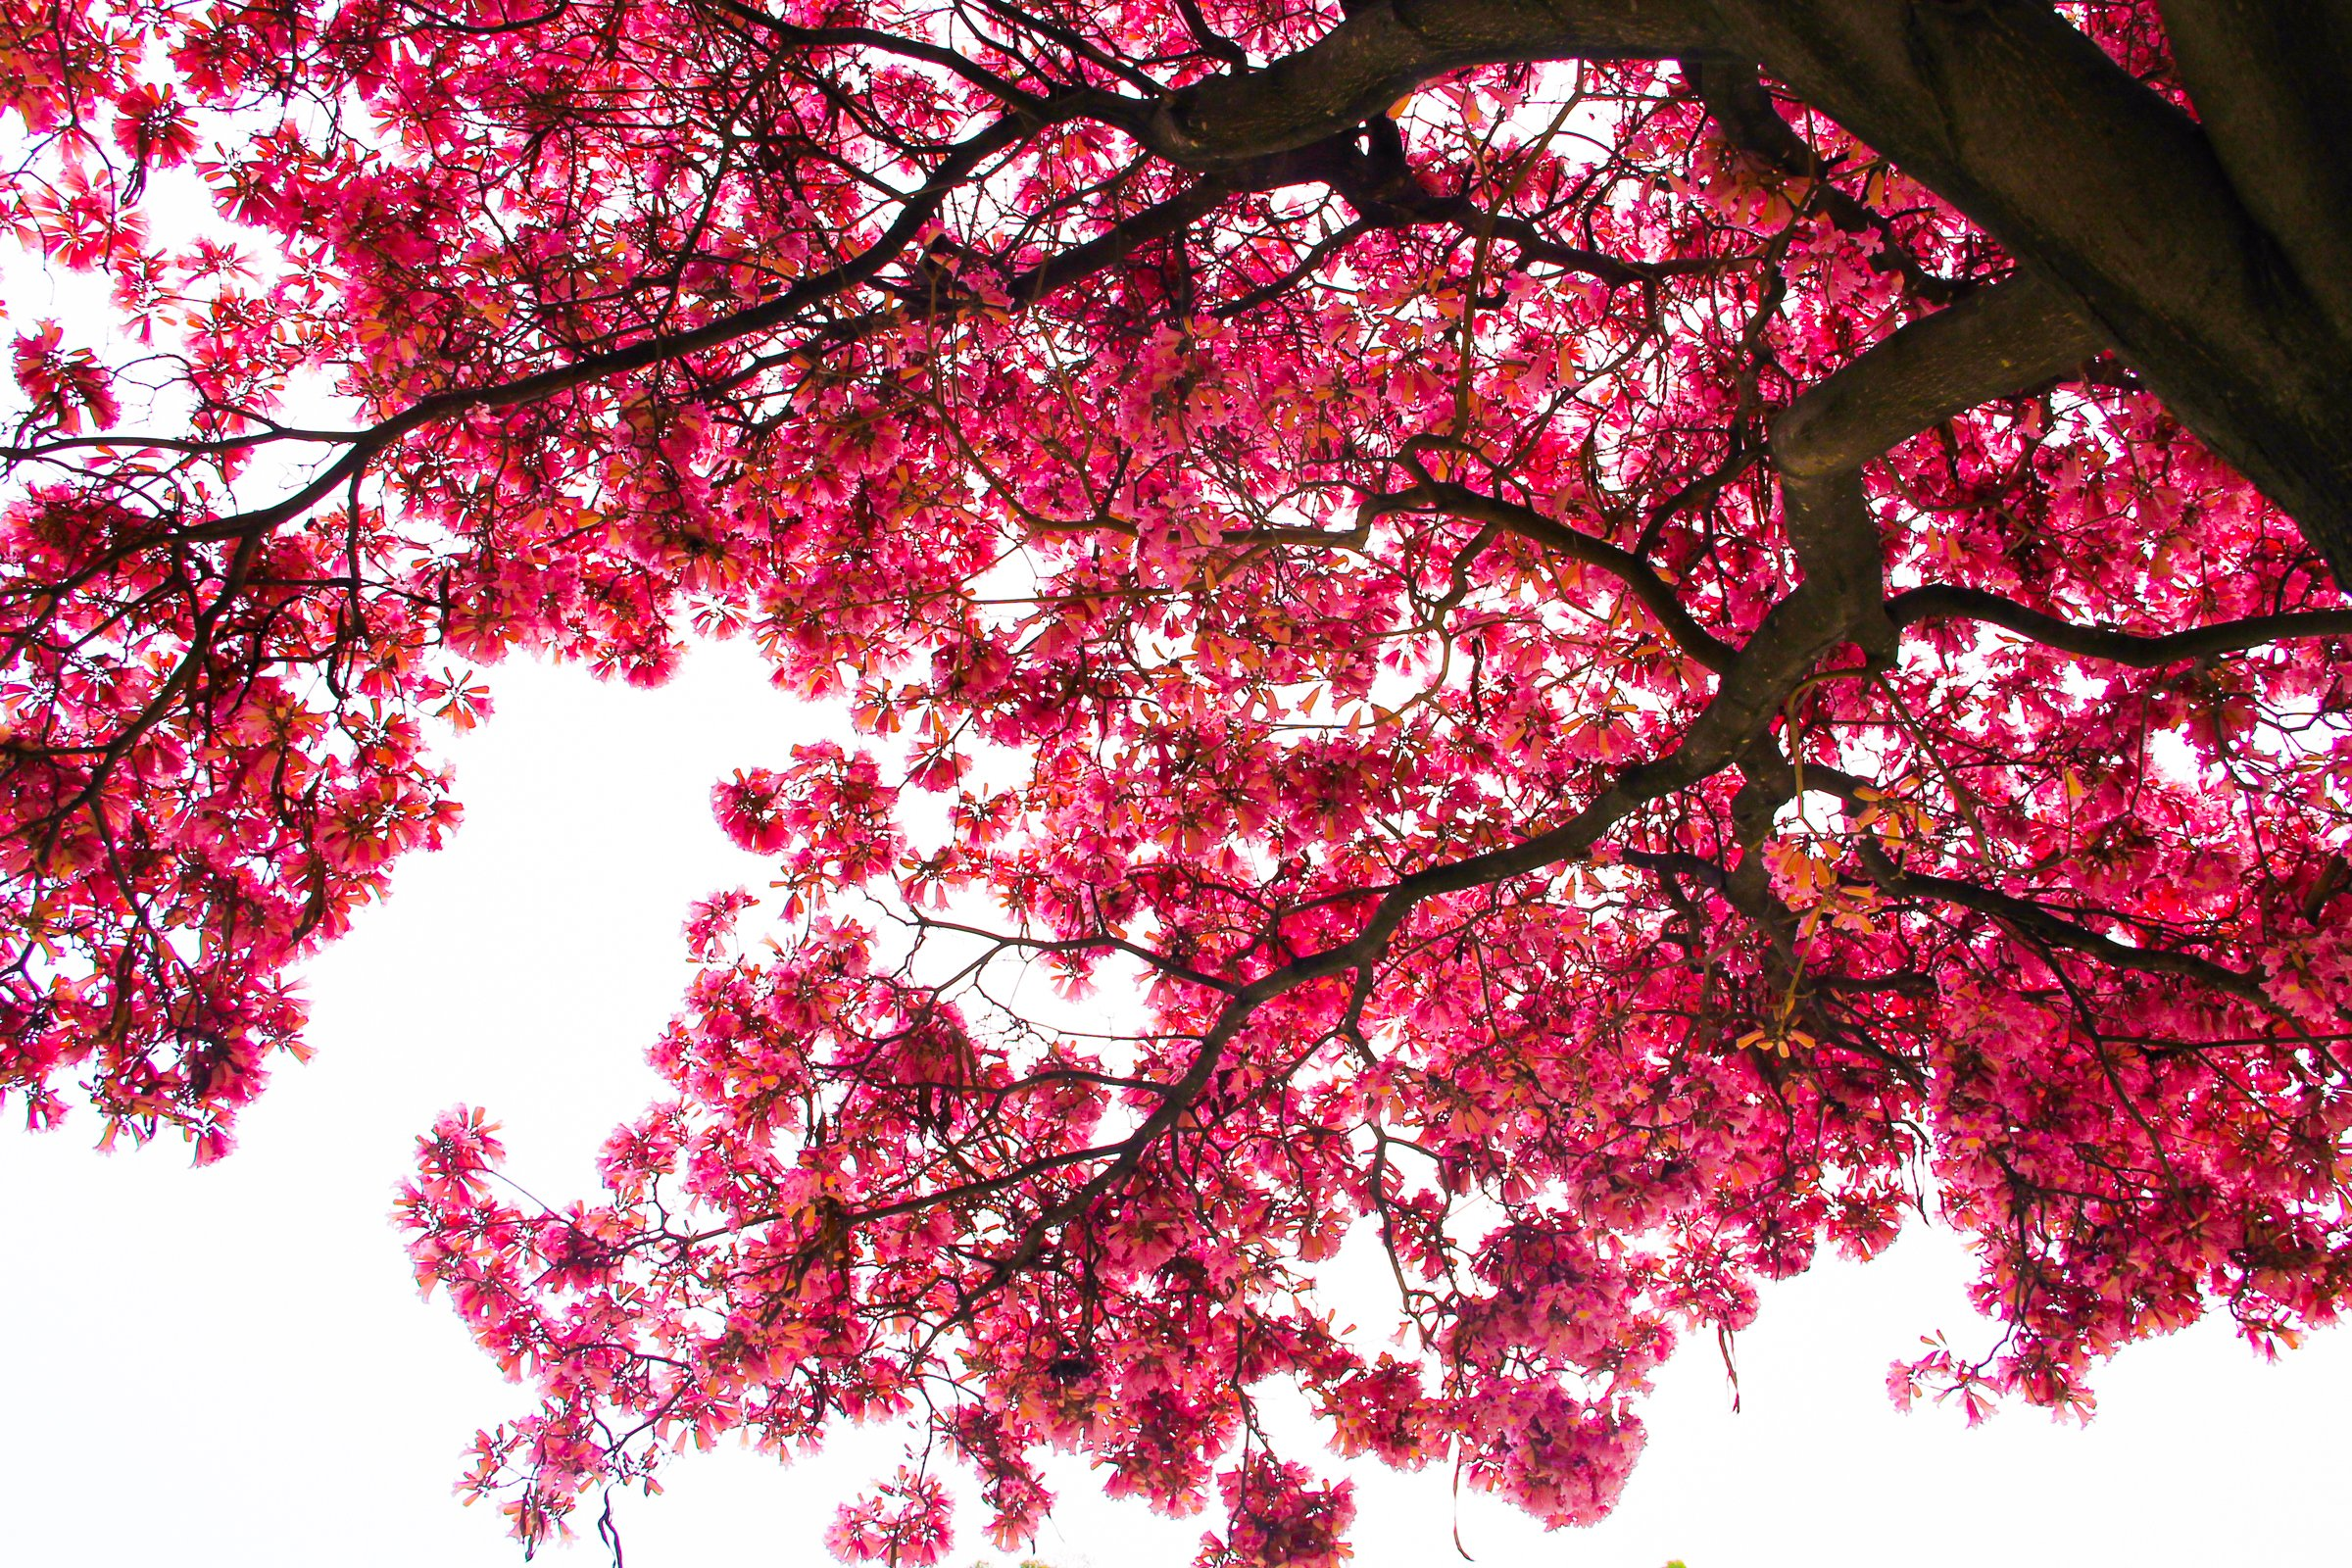 free stock photo of looking up at cherry blossom tree branches